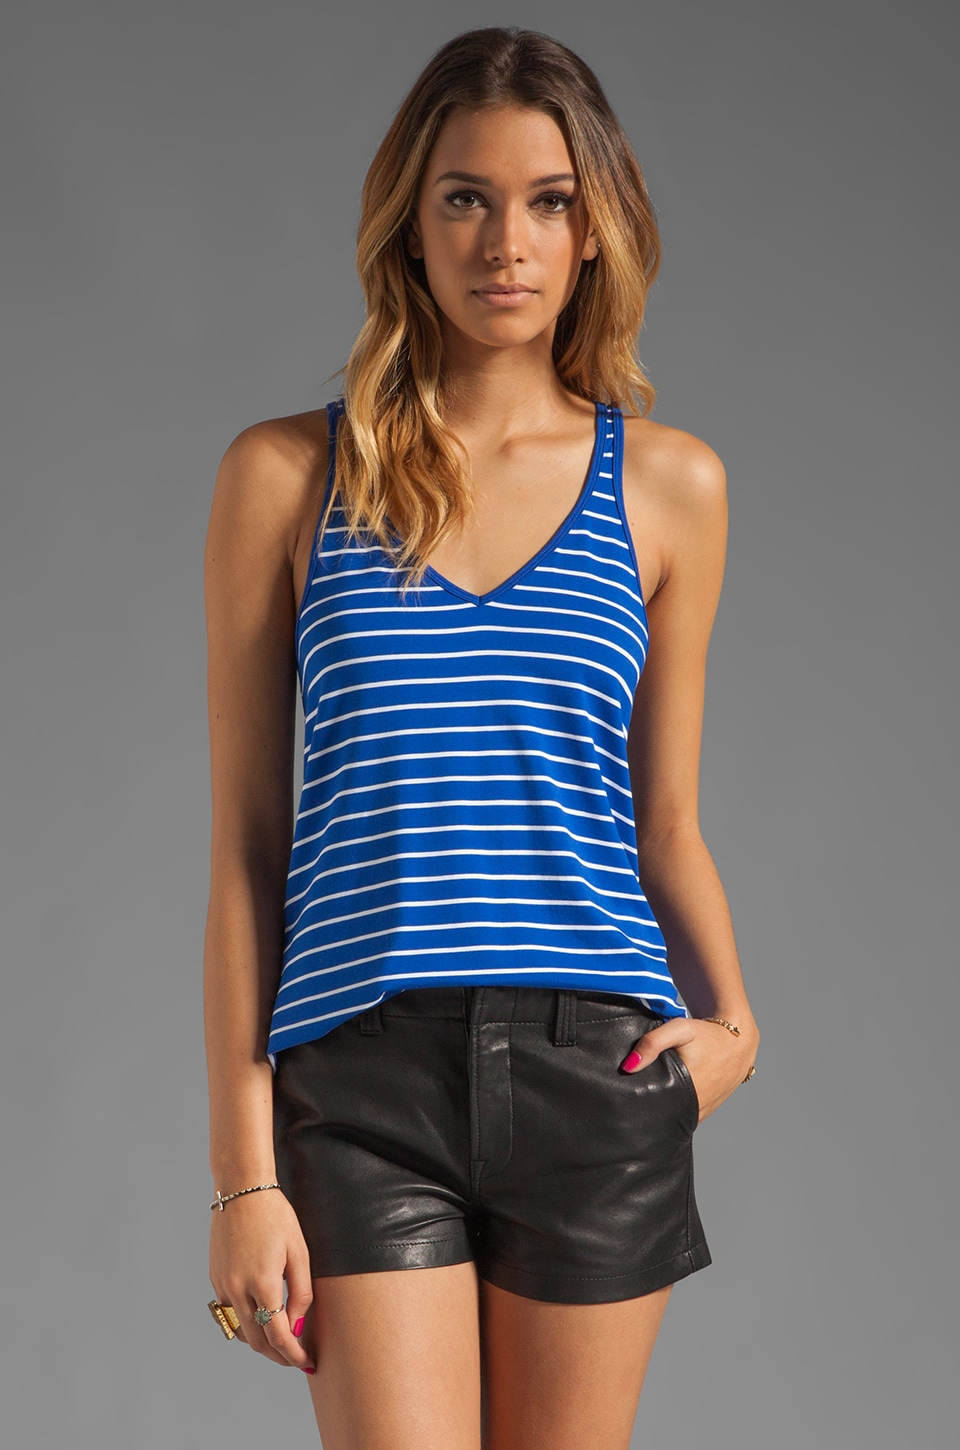 Feel the Piece V Neck Layering Tank in Cobalt/White